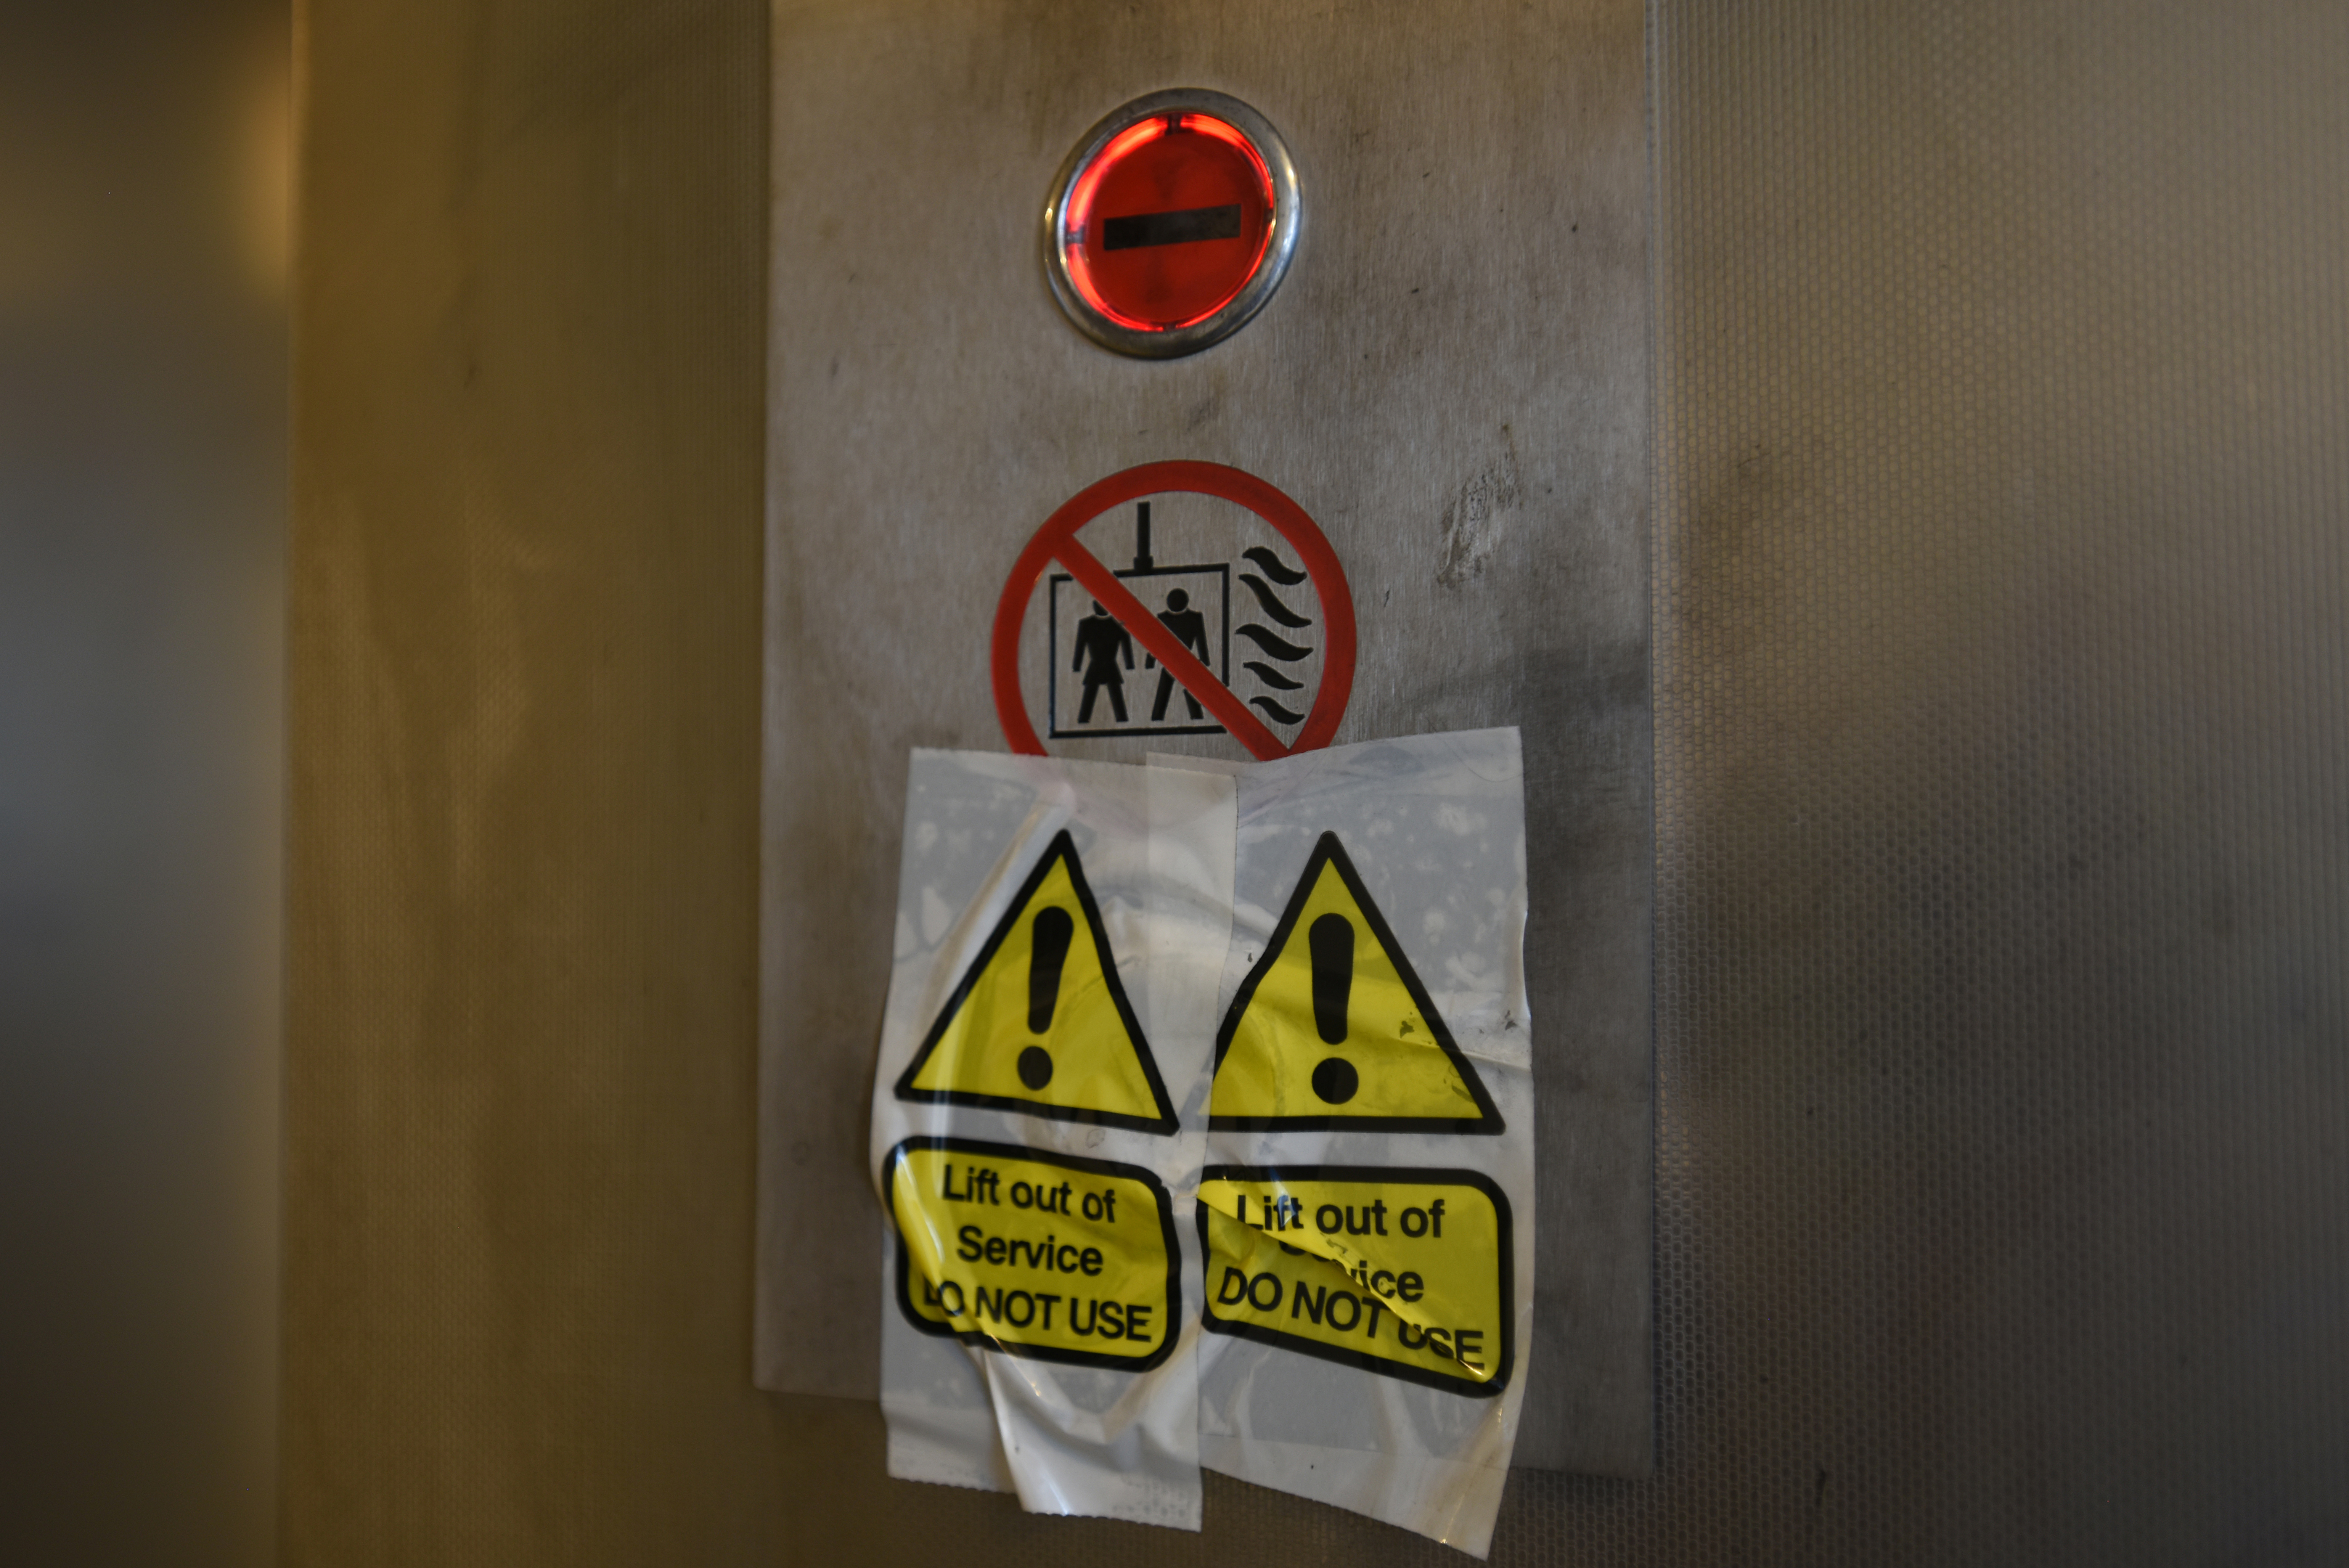 Both lifts at Lansdowne Court are now out of order.